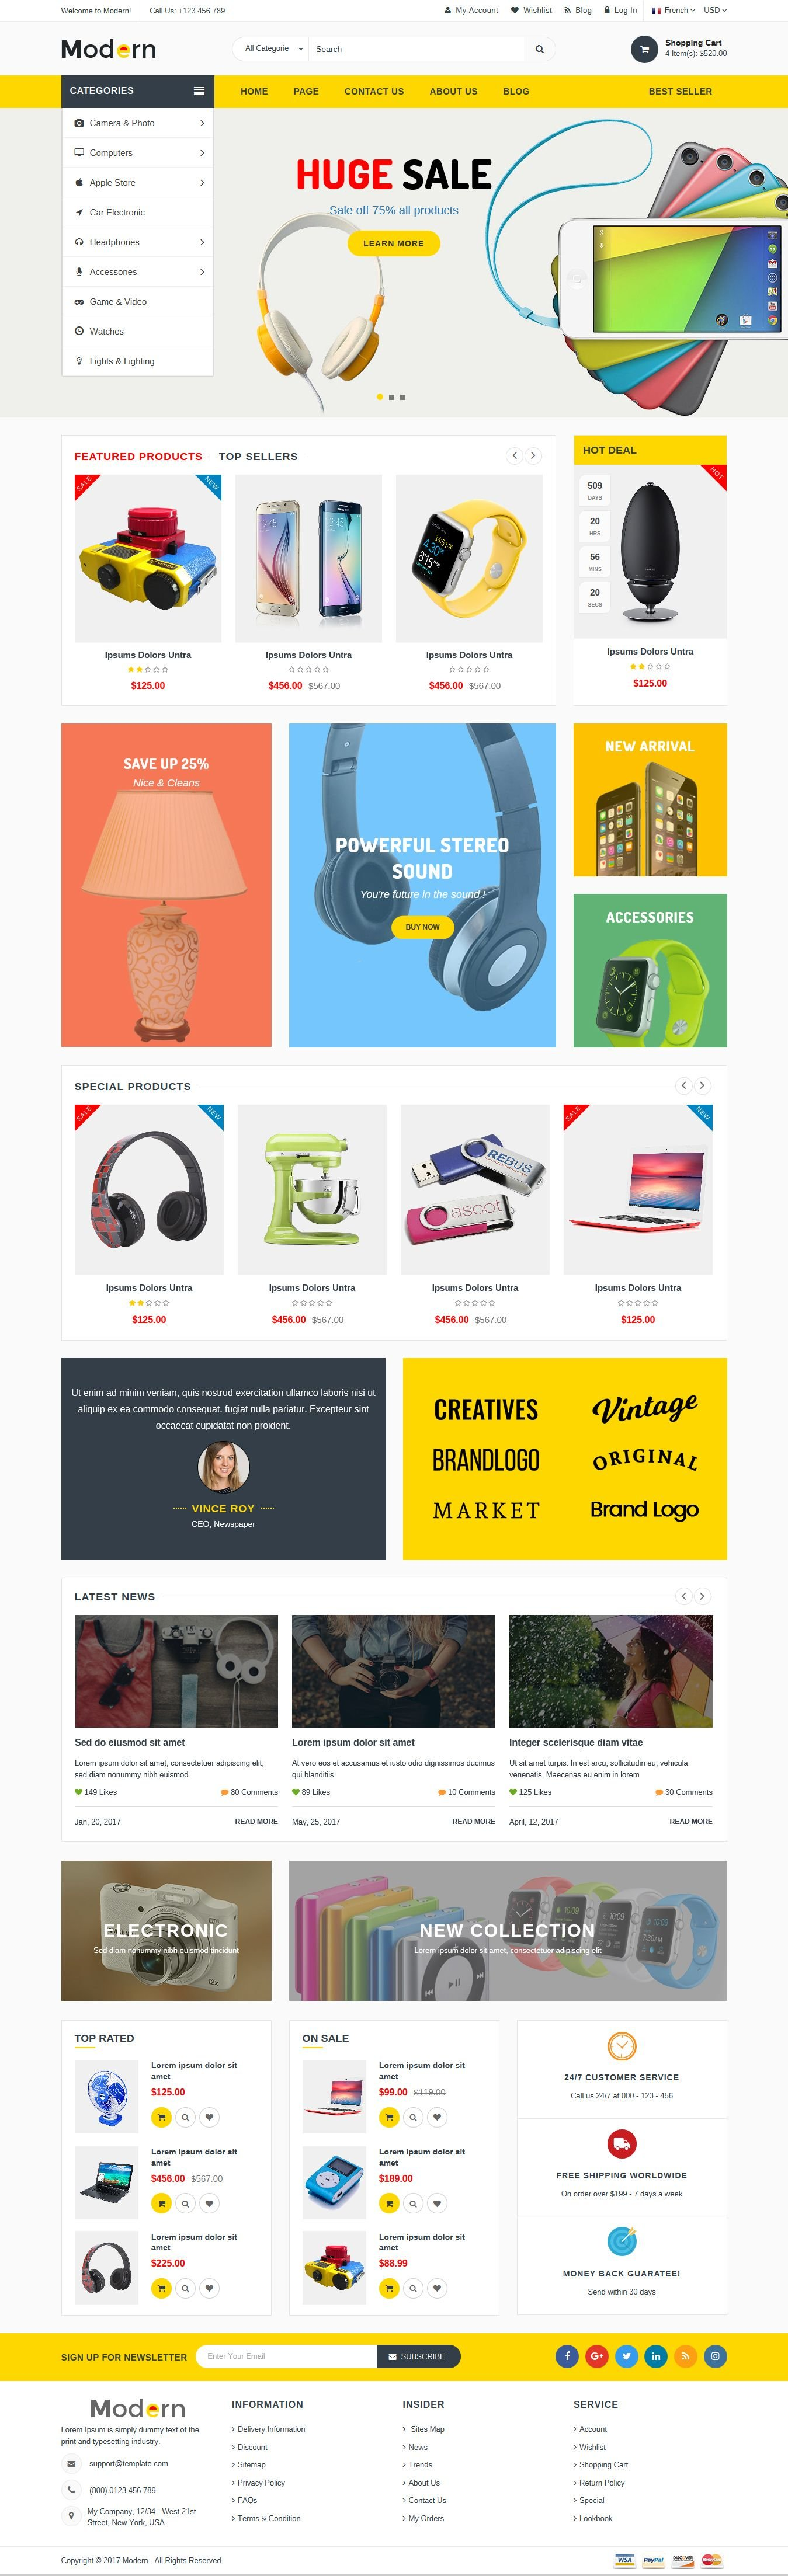 Modern - Multipurpose Website Template Screenshot 3